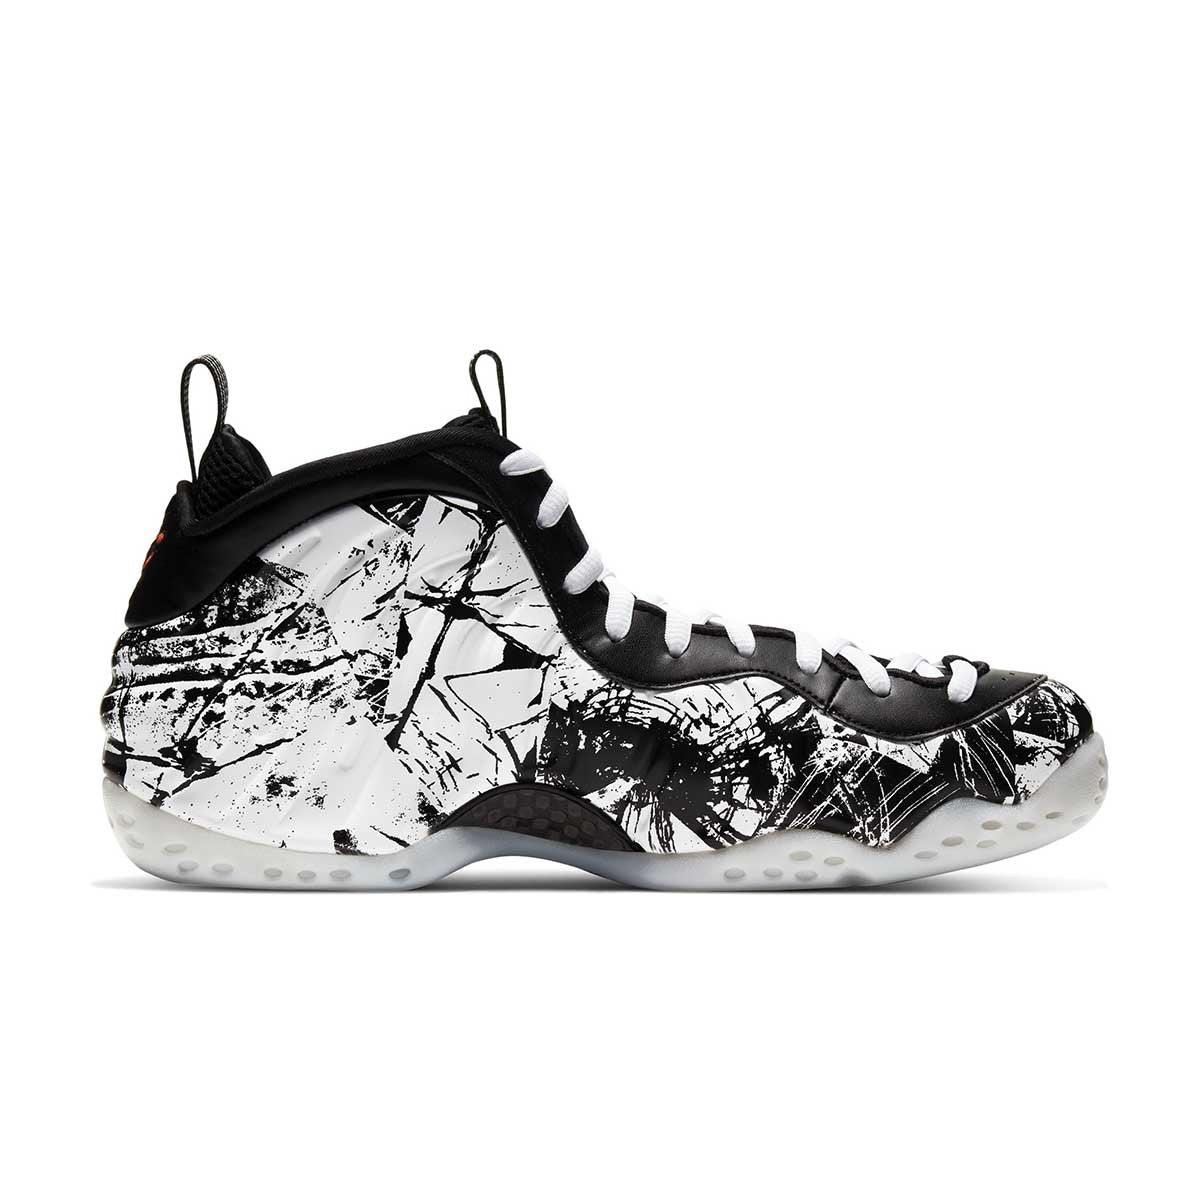 Men's Nike Air Foamposite 1